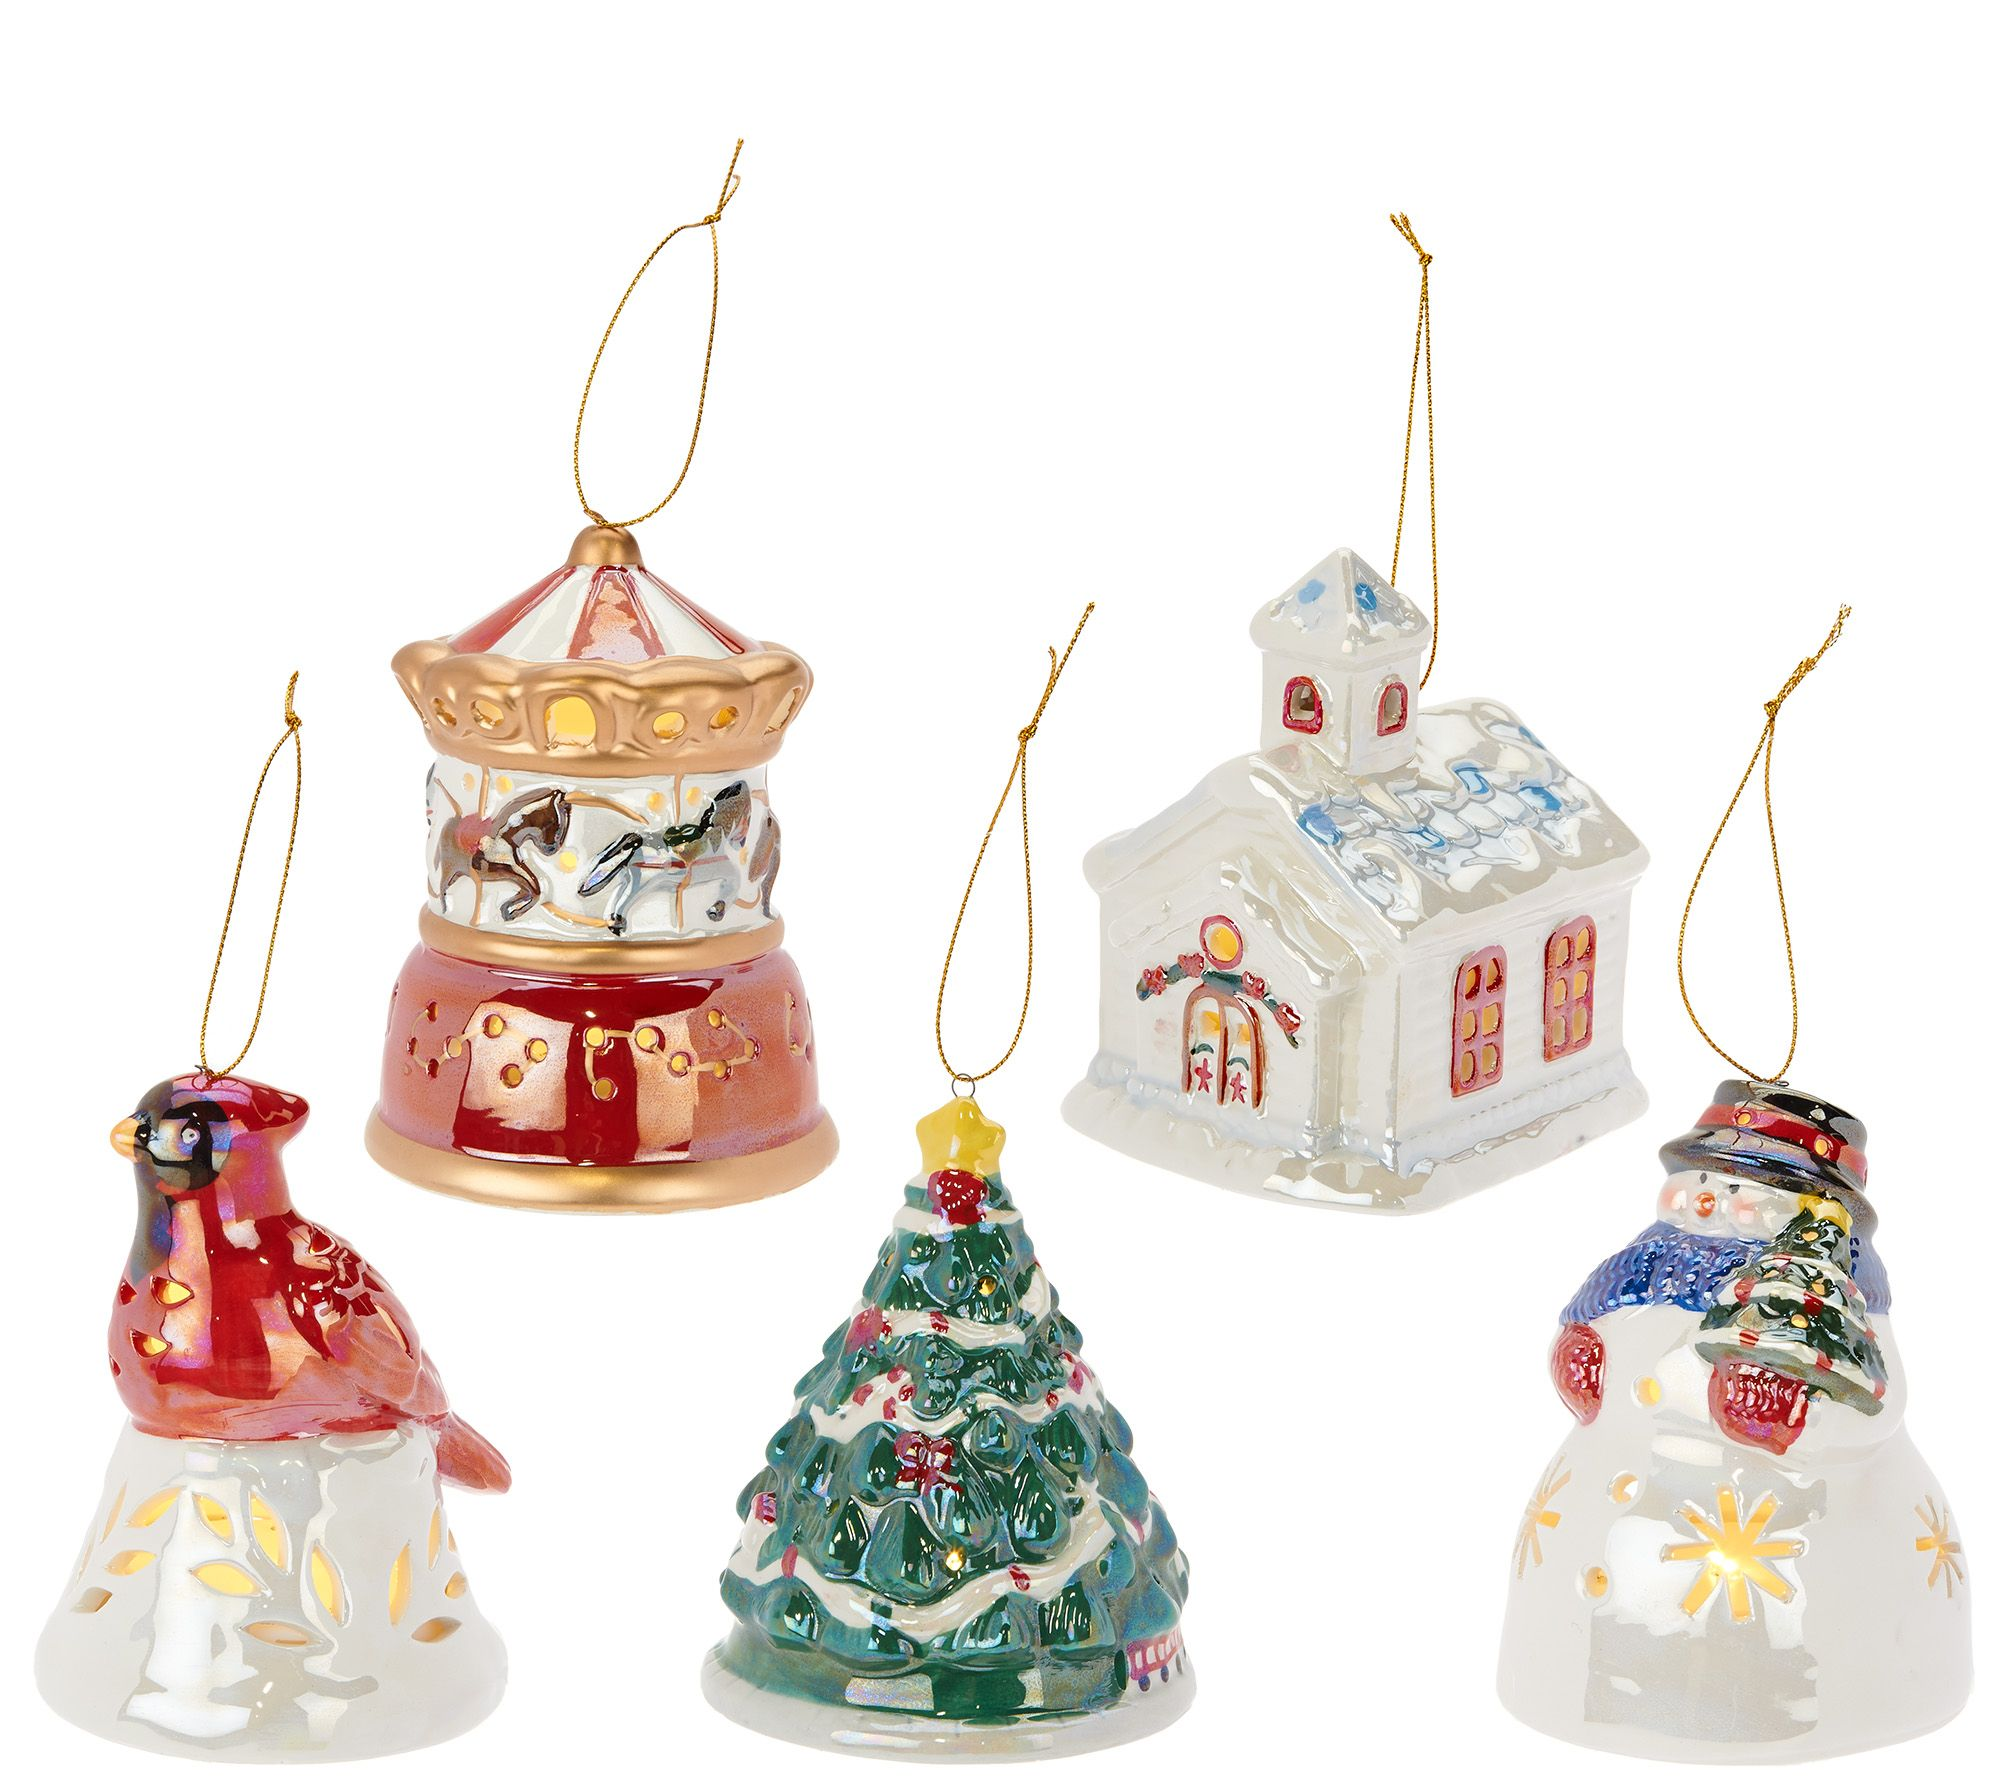 Mr. Christmas S/5 Porcelain Illuminated Ornaments With